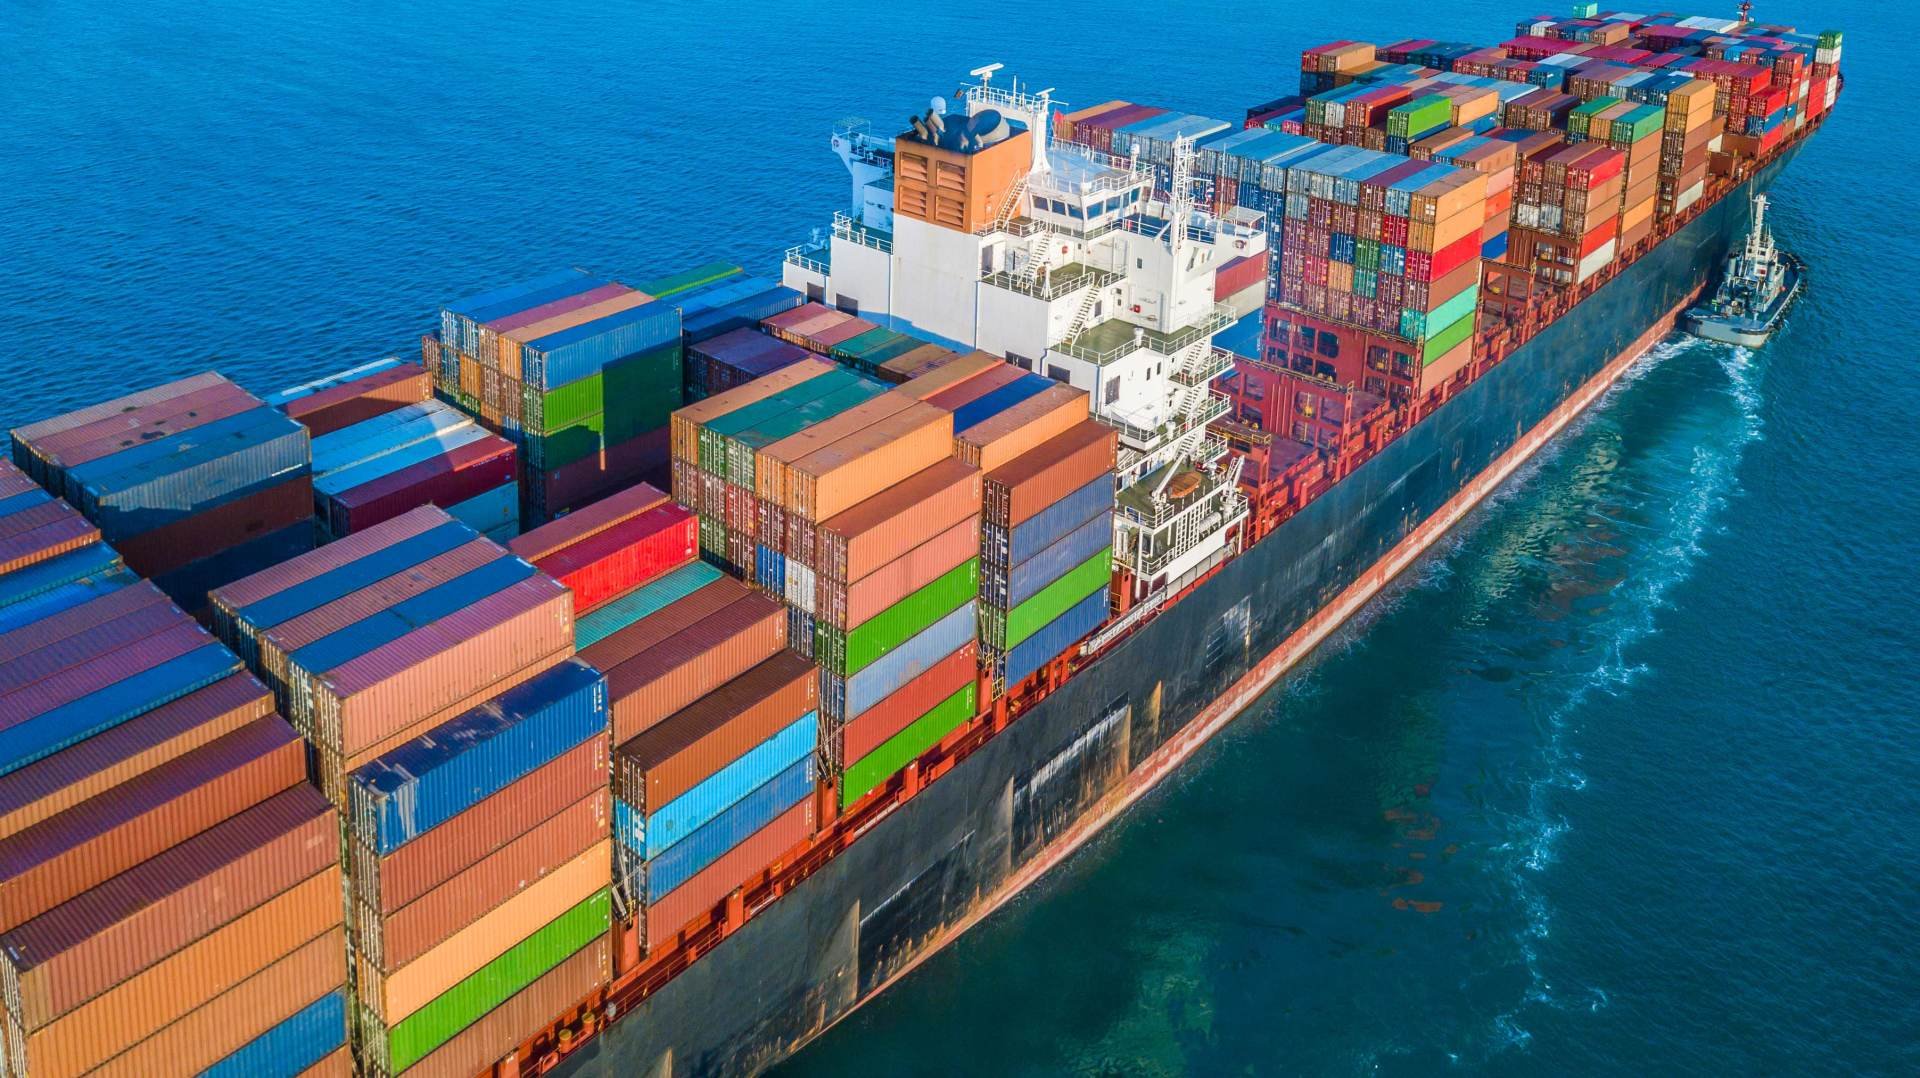 Export — Ship and Different Containers in W. Palm Beach, FL